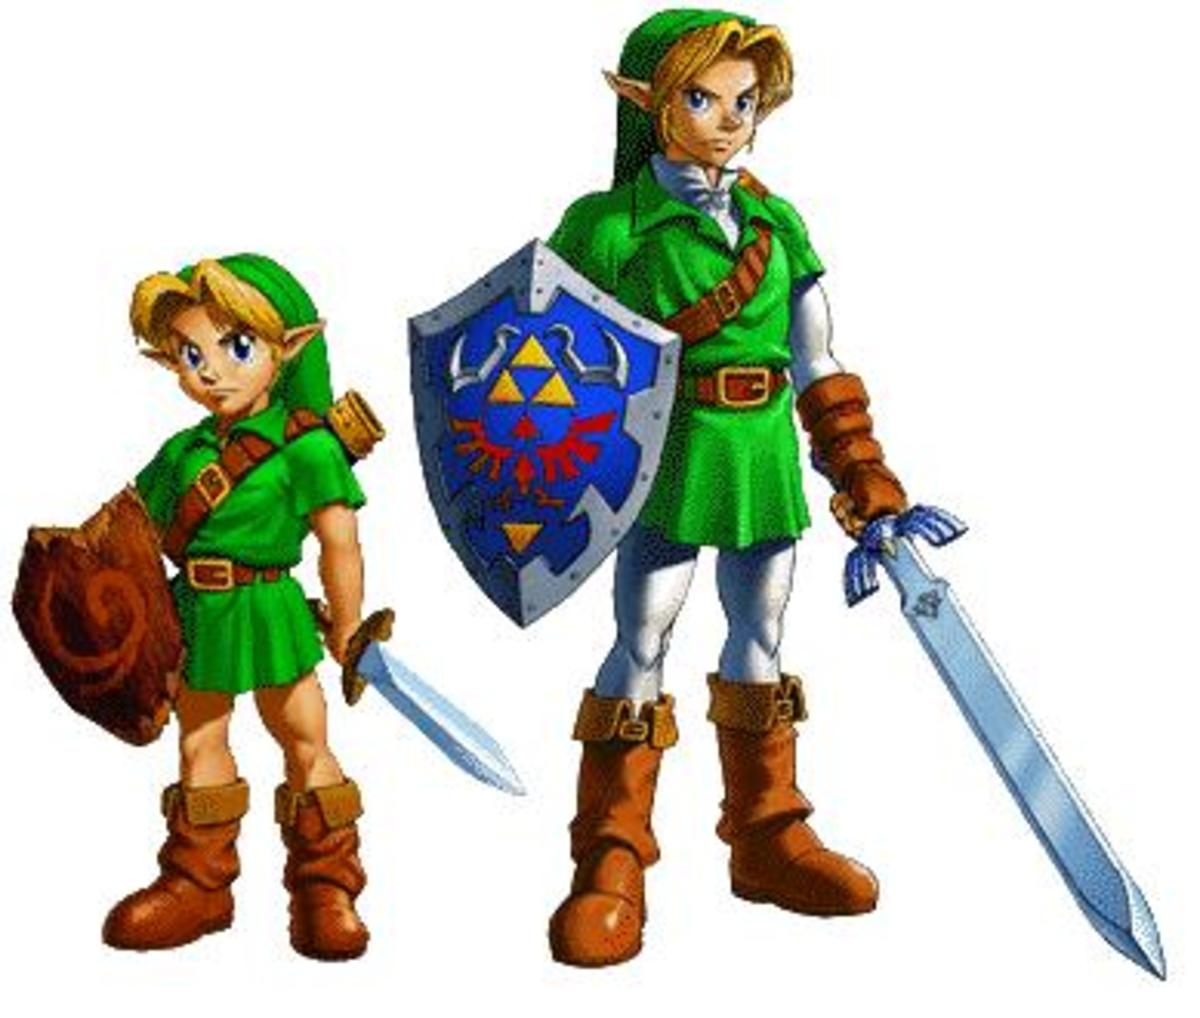 The Child and Adult versions of Link from Ocarina of Time. The Child version appears again in Majora's Mask.